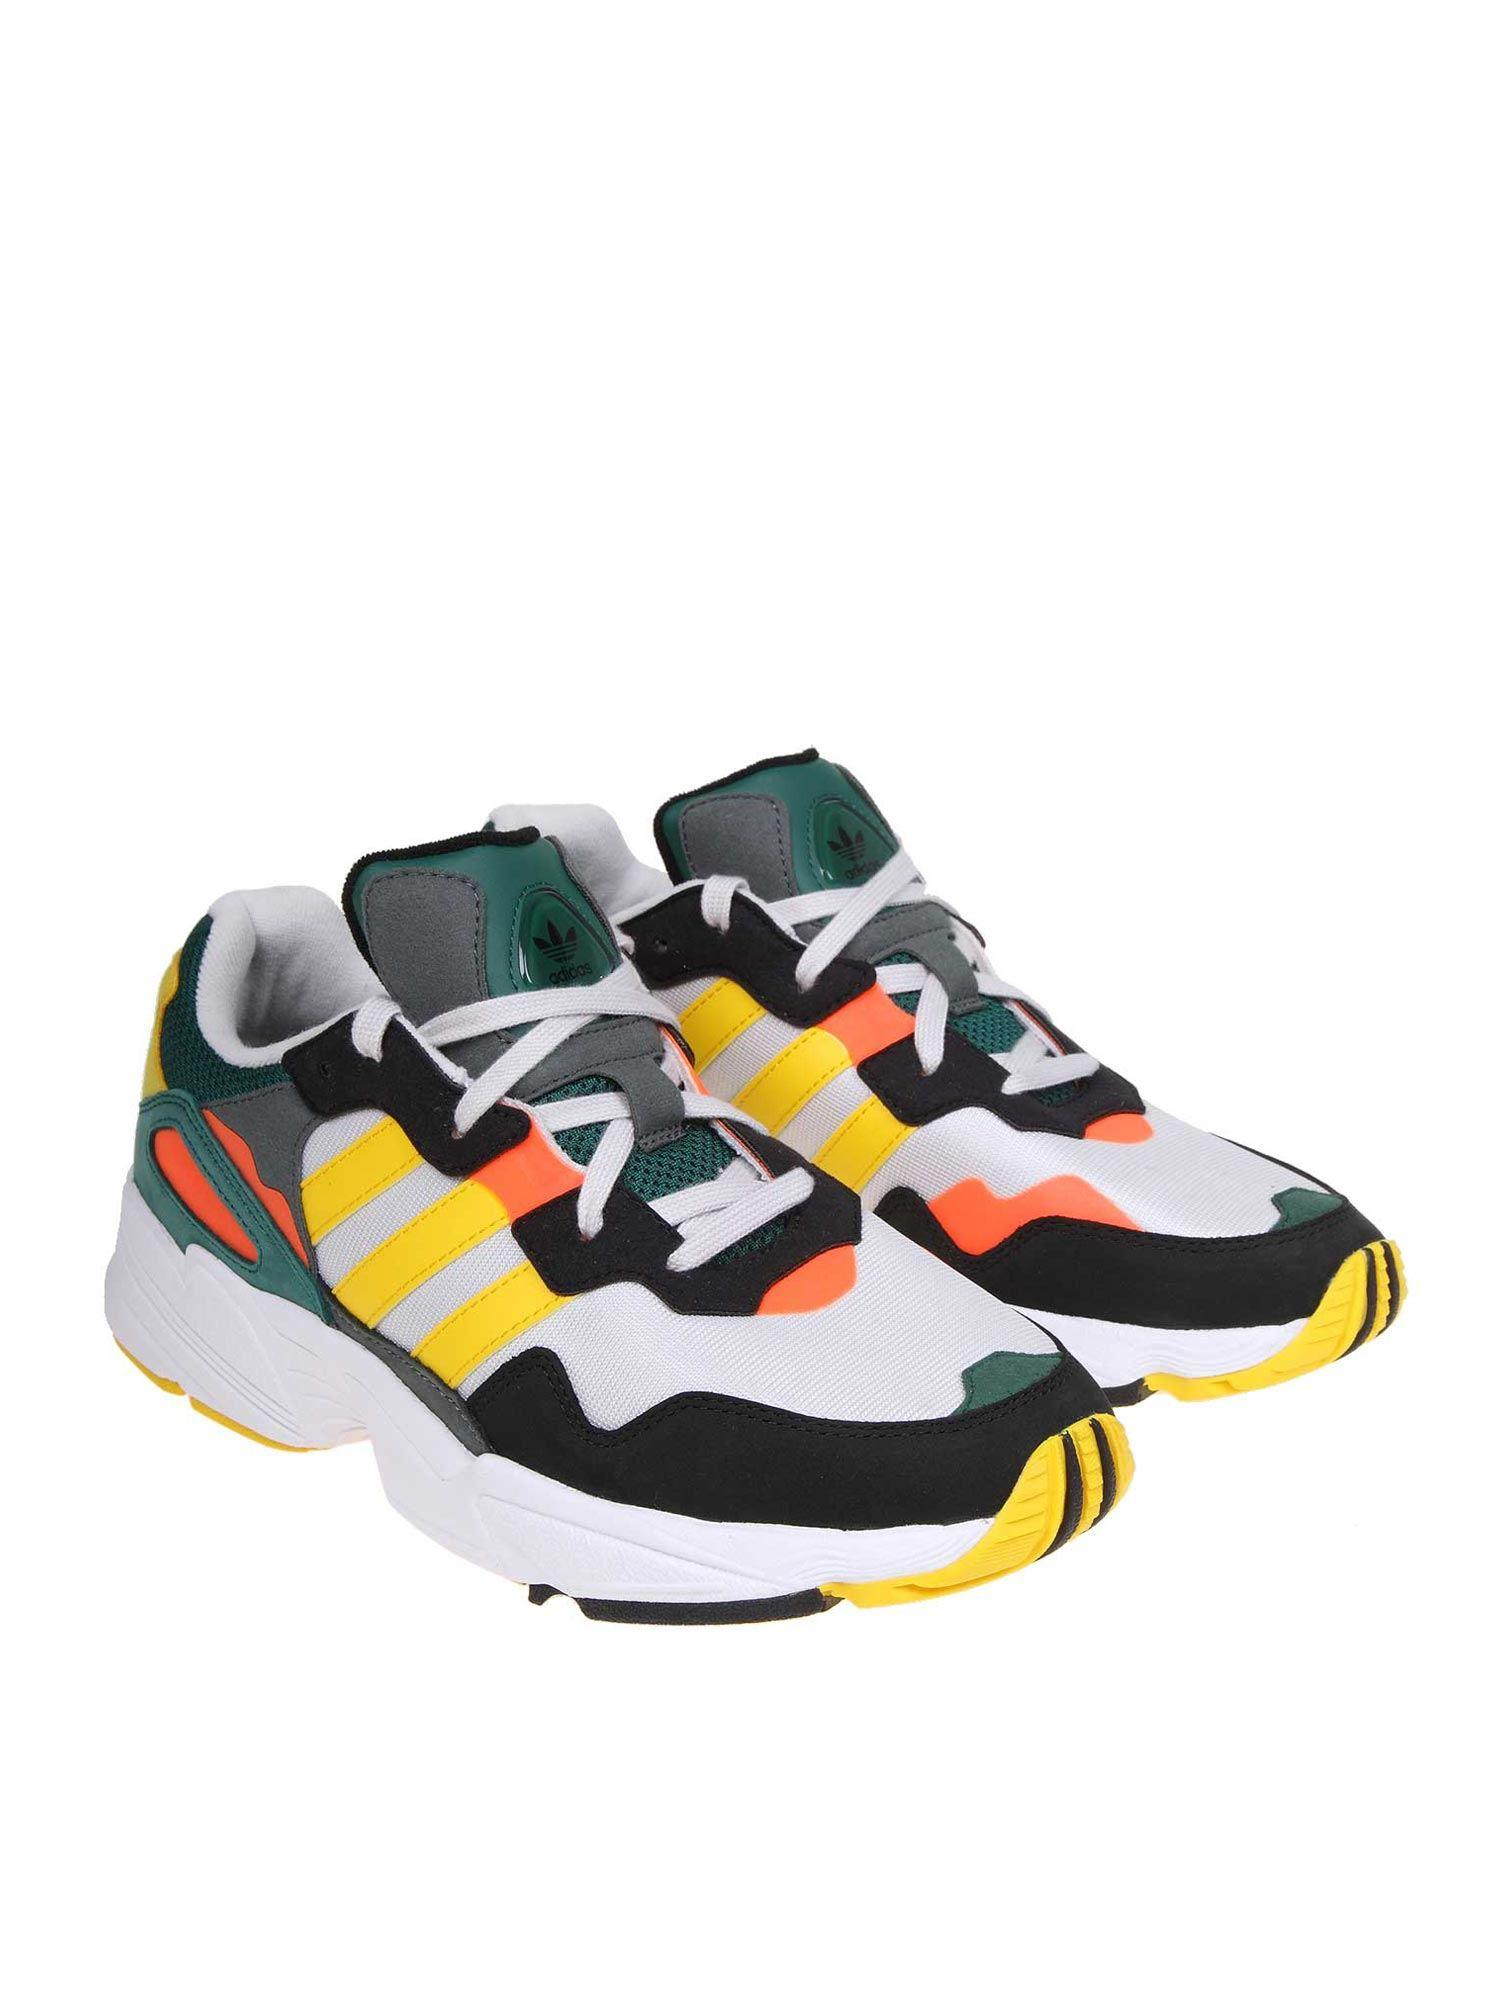 Adidas Originals - Multicolor Yung-96 Sneakers for Men - Lyst. View  fullscreen 461b265d3